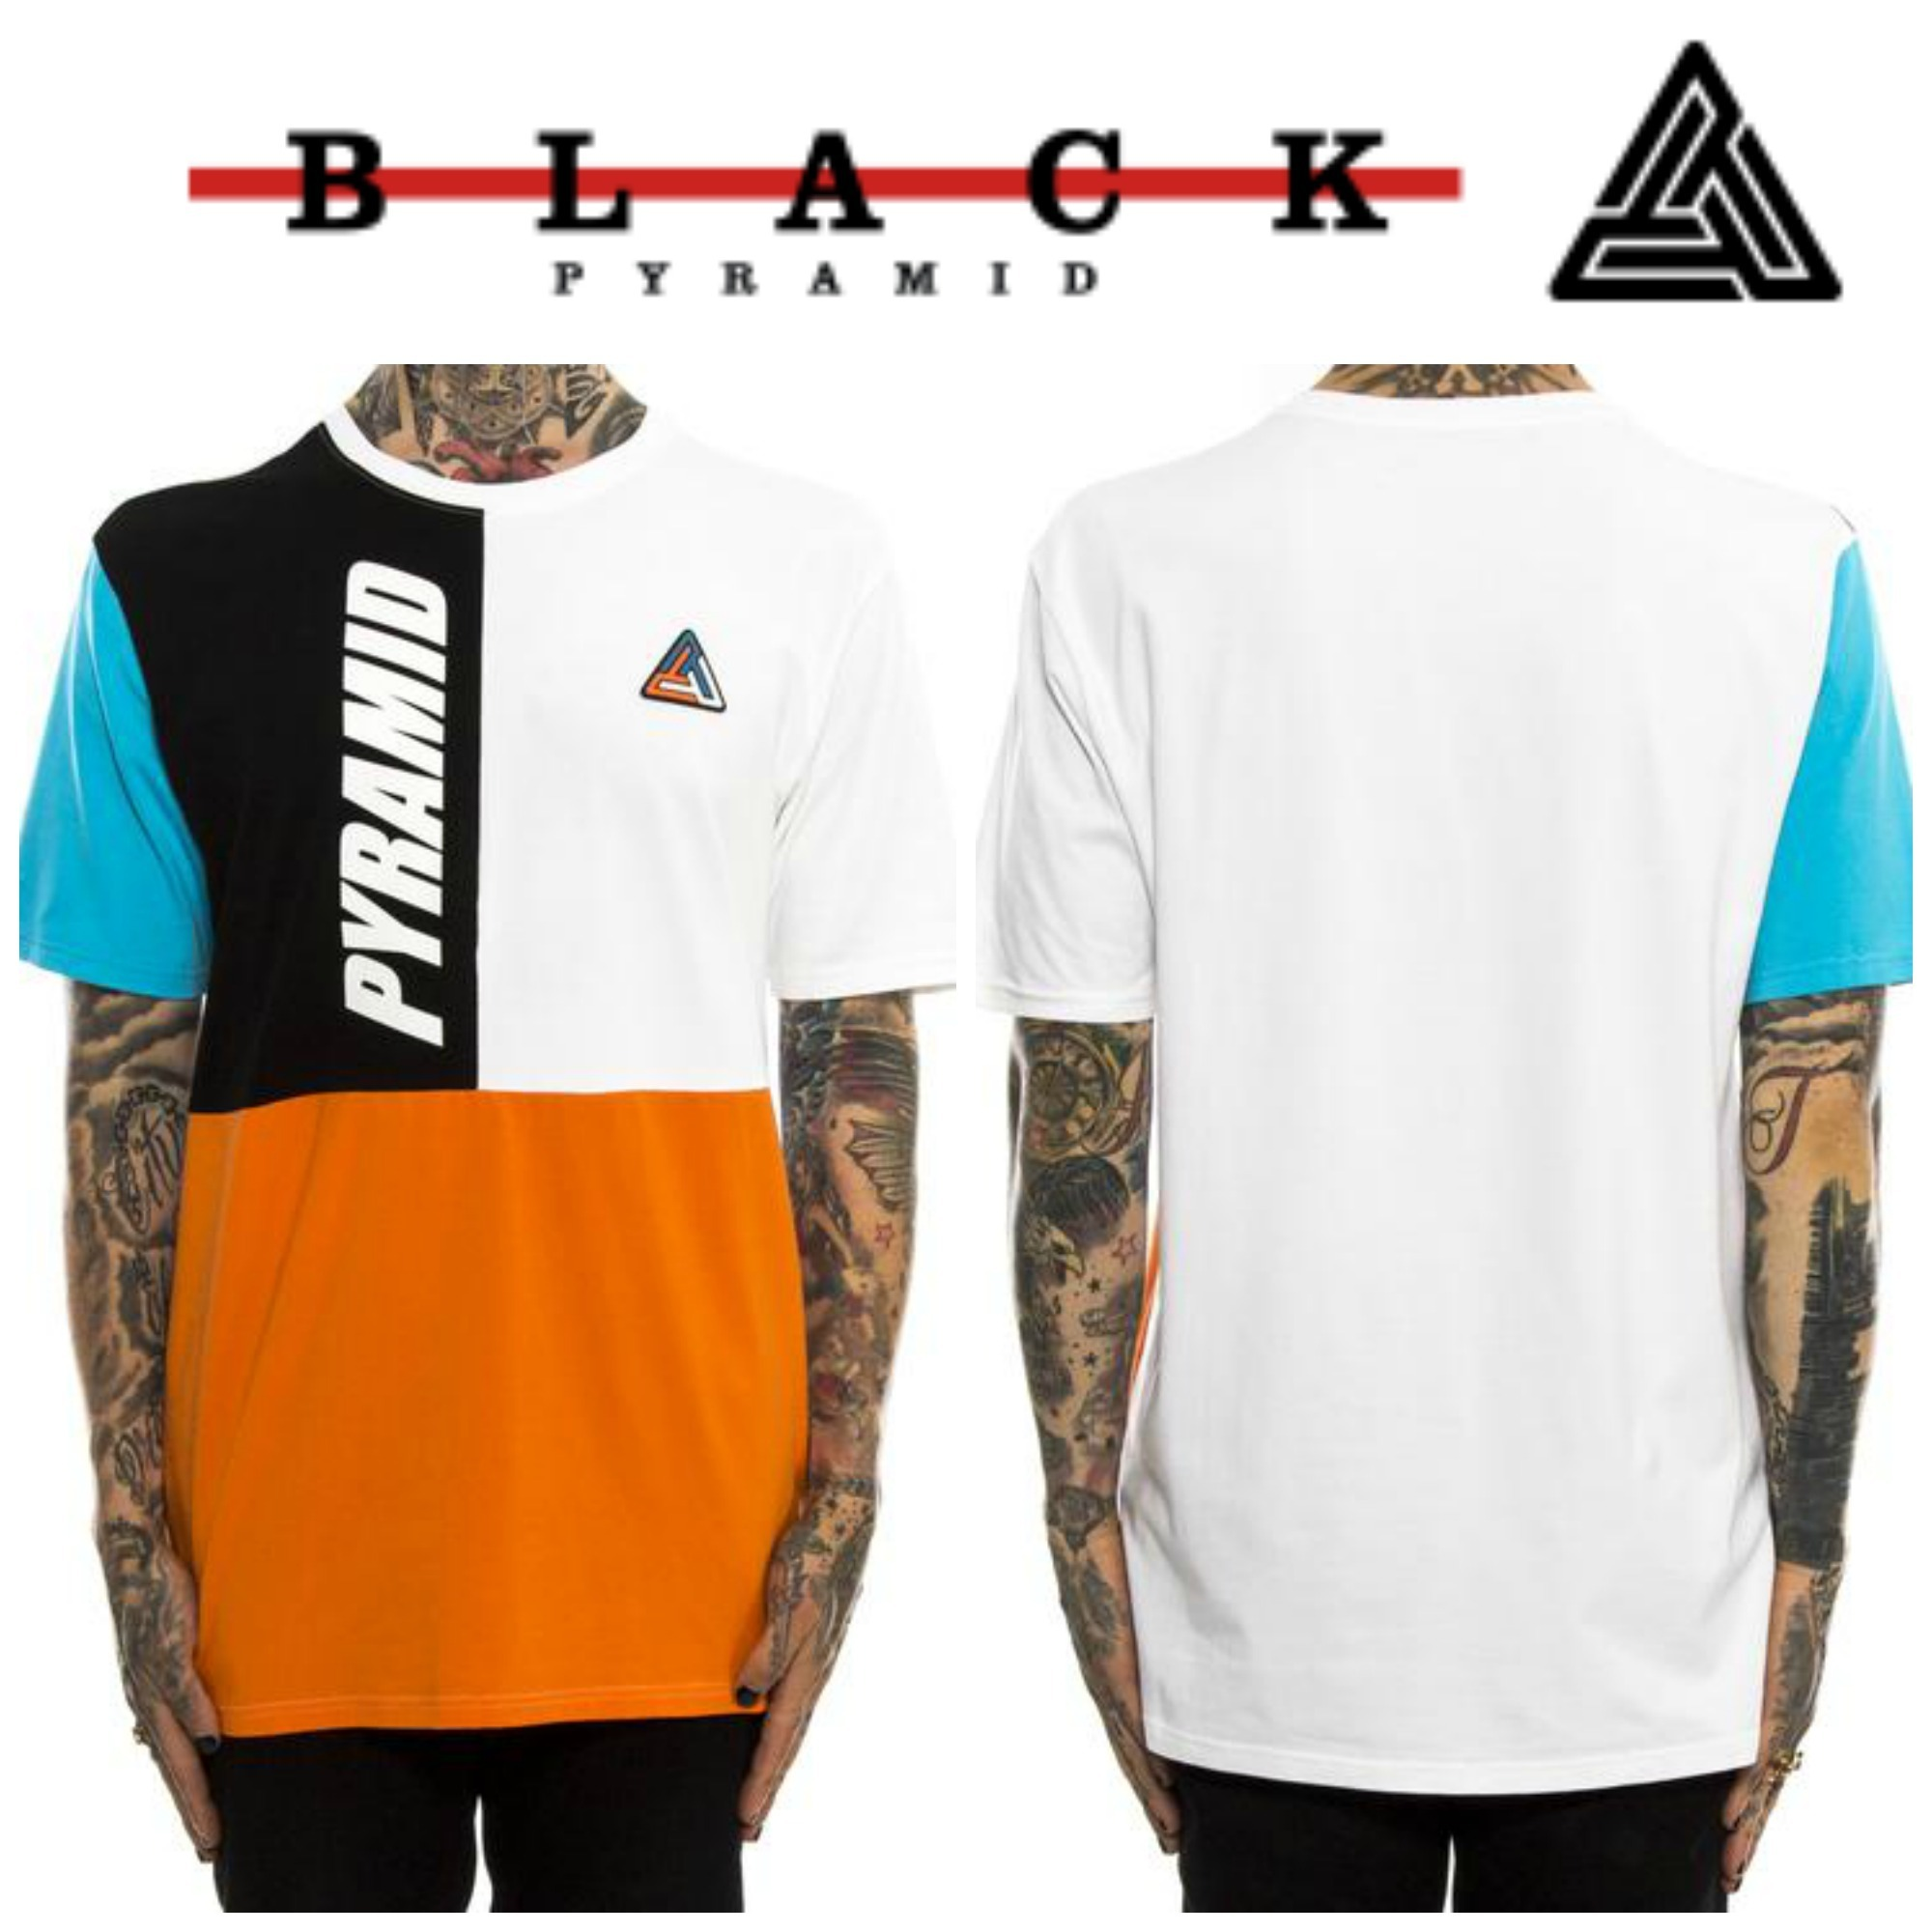 【Chris Brown愛用】新作17FW☆海外限定☆PYRAMID RETRO T-SHIRT